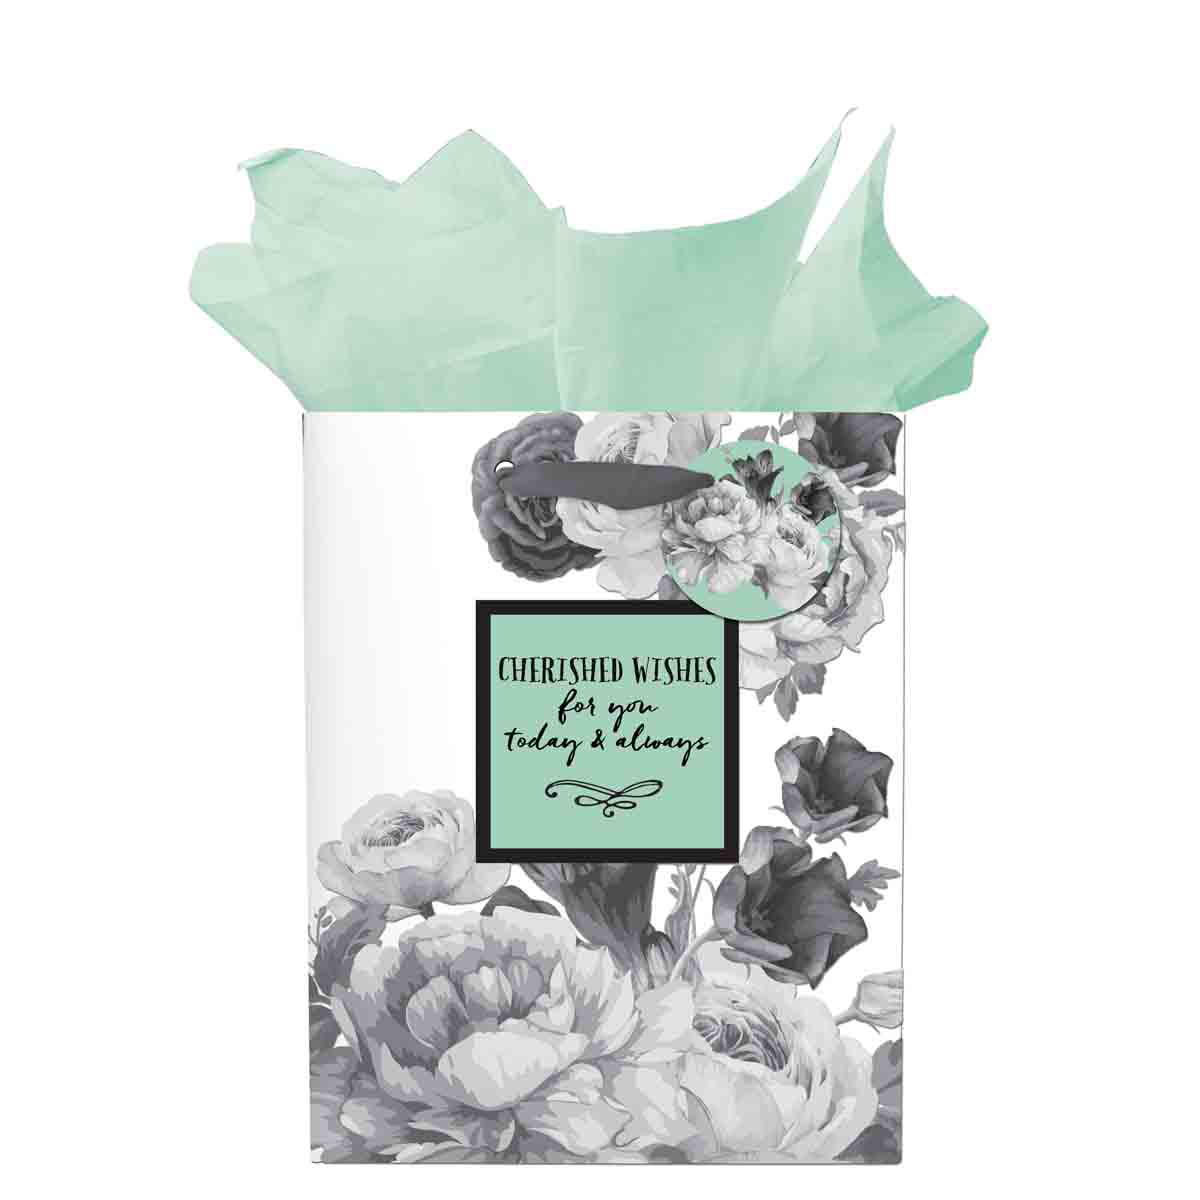 Cherished Wishes For Your Today And Always (Small Gift Bag)